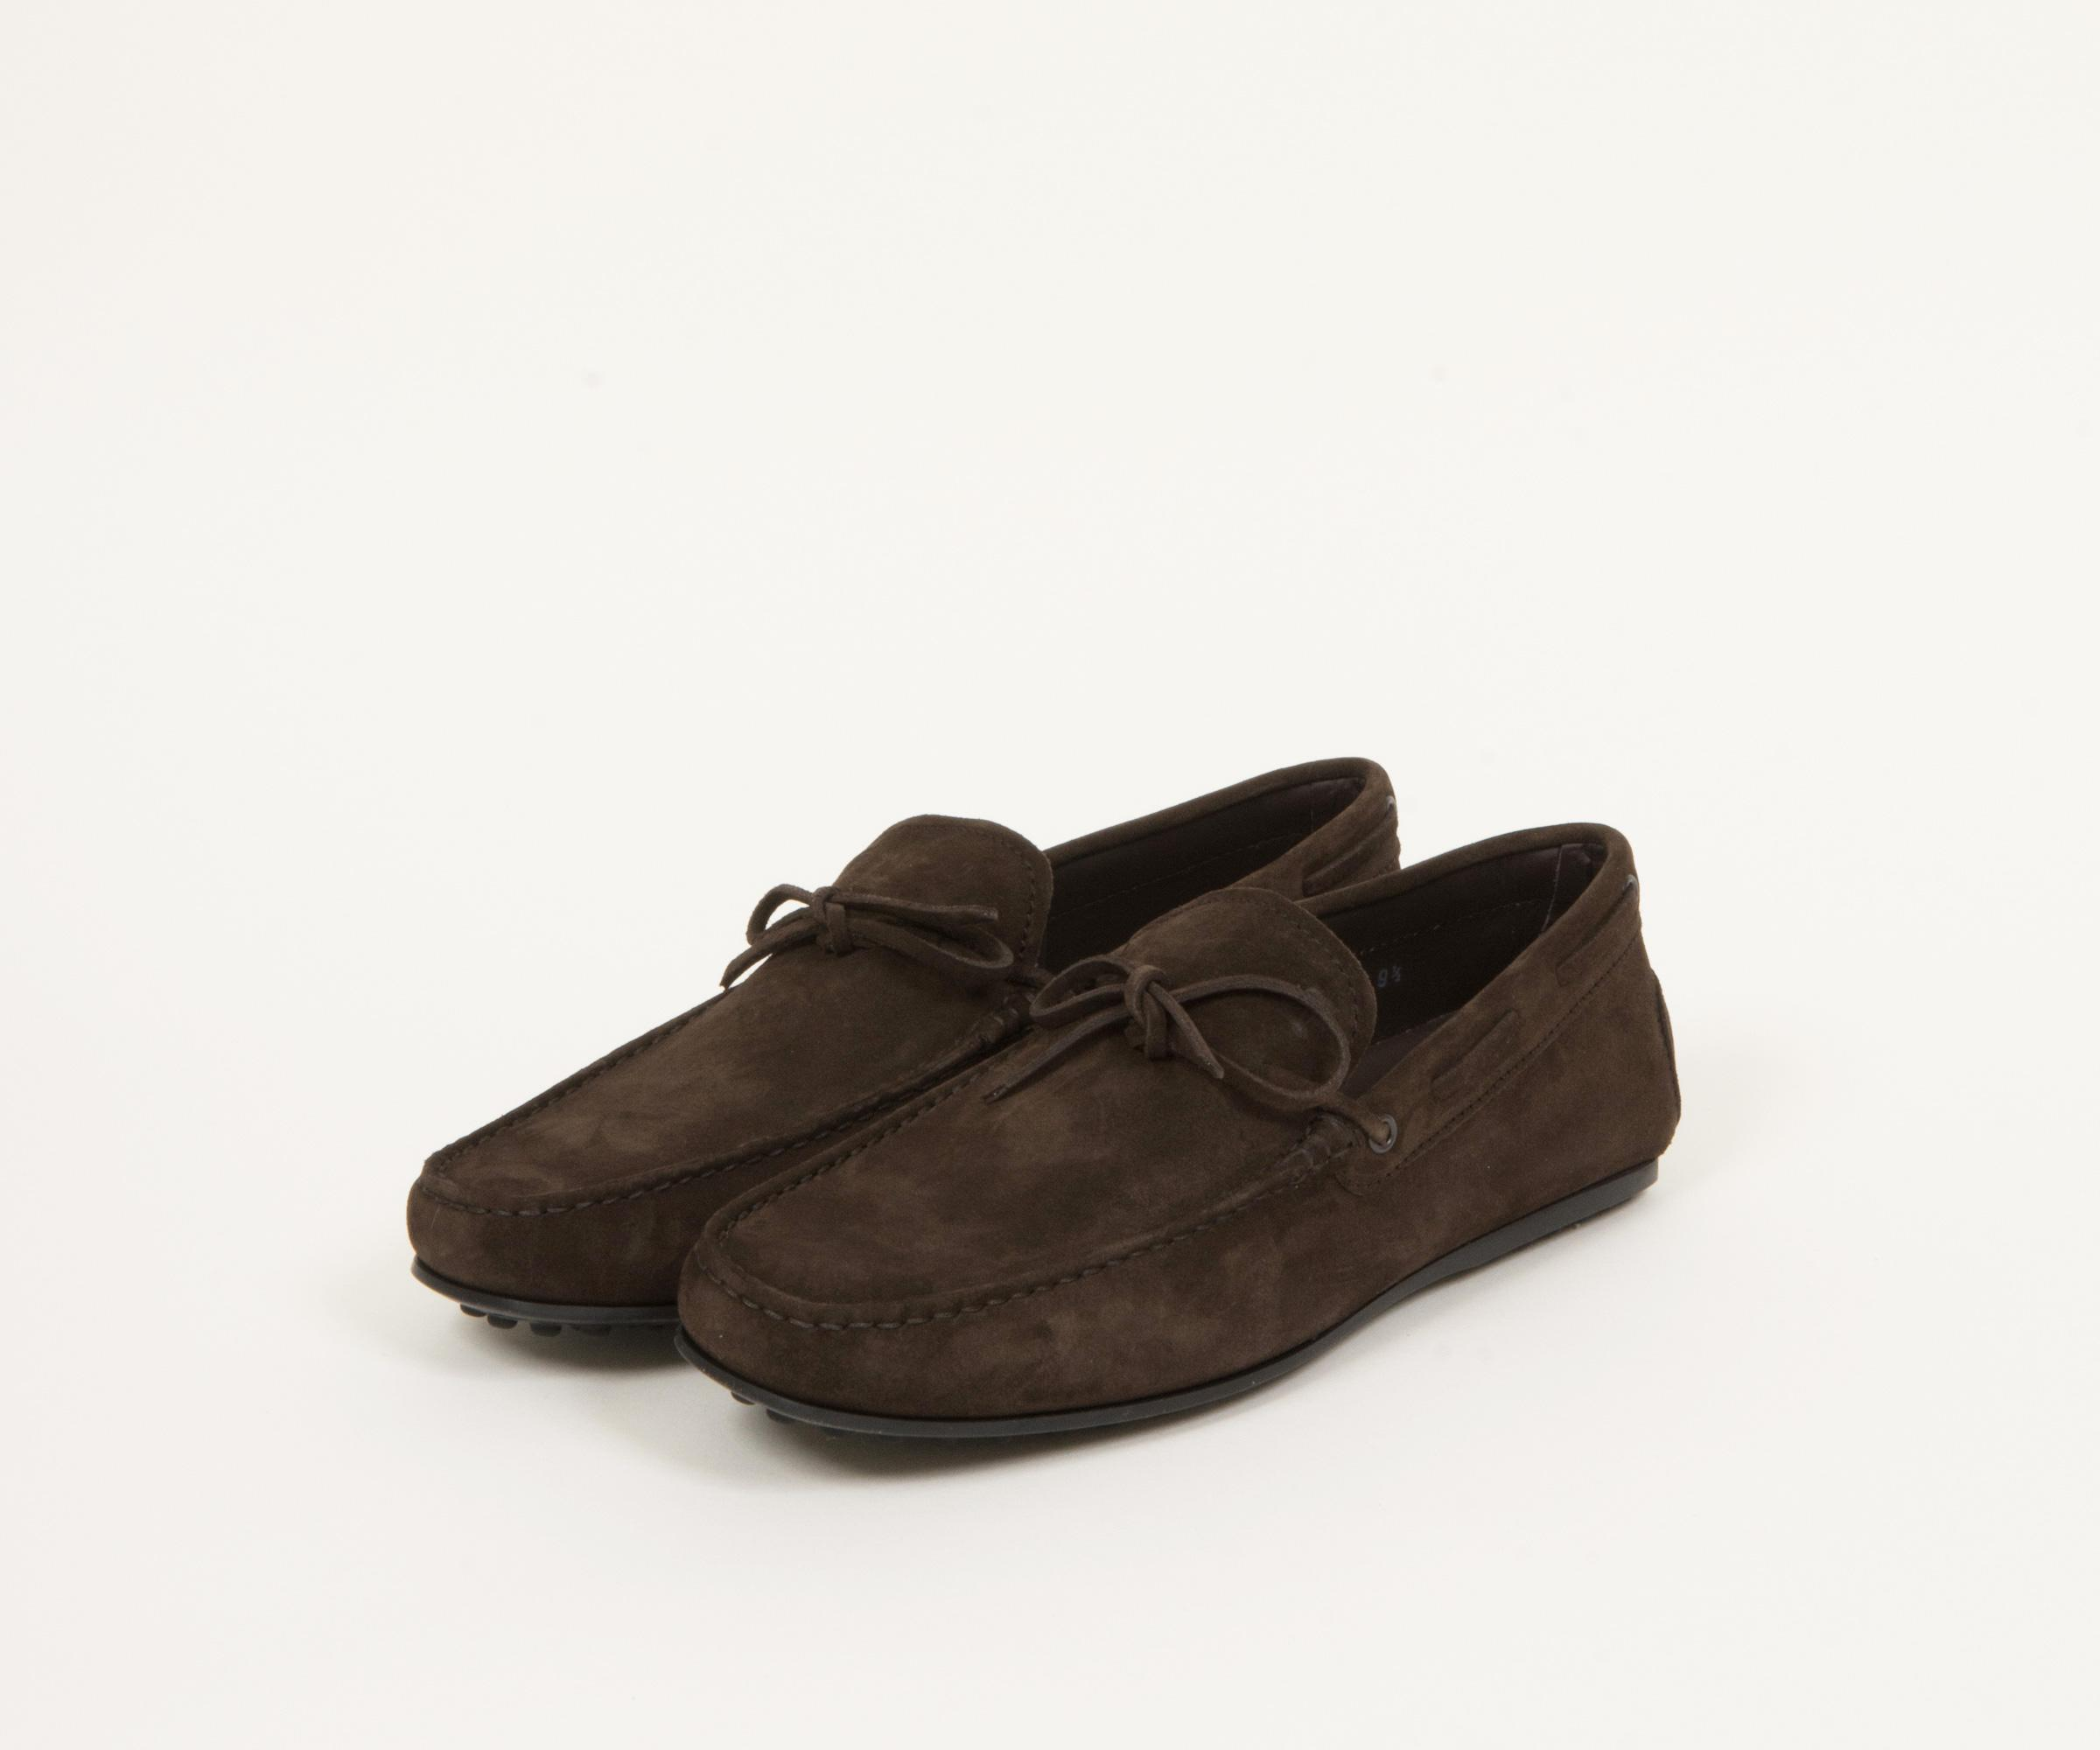 8f4269dbb9a Lyst - Tod s City Gommino Suede Driving Shoes Dark Brown in Brown ...